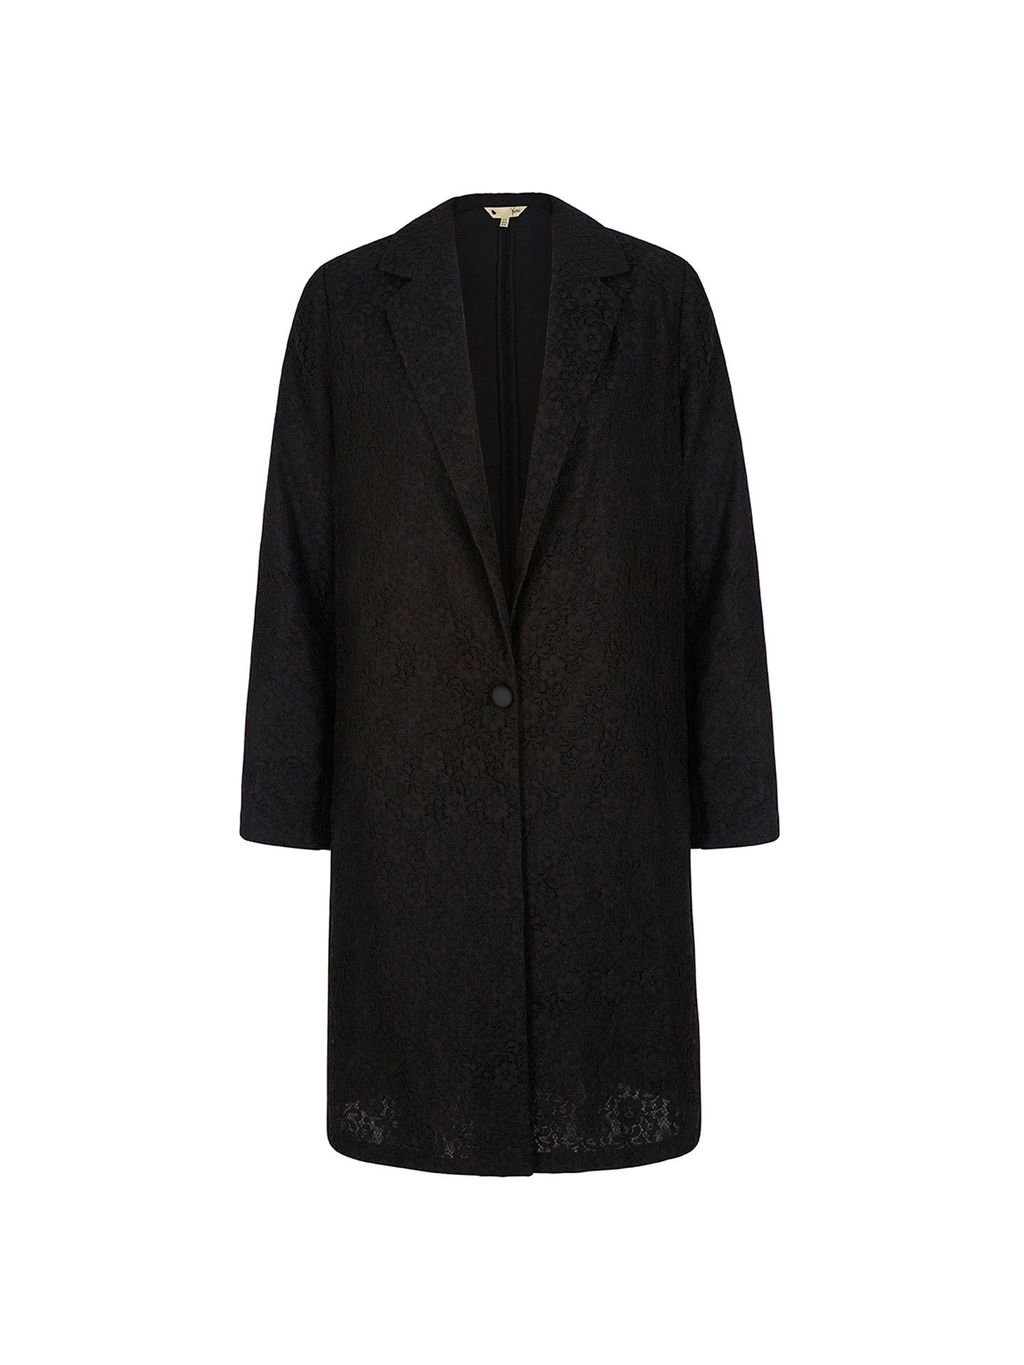 Lace Tailored Jacket, Black - style: single breasted blazer; collar: standard lapel/rever collar; predominant colour: black; occasions: evening, creative work; fit: straight cut (boxy); fibres: polyester/polyamide - mix; length: mid thigh; sleeve length: long sleeve; sleeve style: standard; texture group: leather; collar break: low/open; pattern type: fabric; pattern size: light/subtle; pattern: patterned/print; season: s/s 2016; wardrobe: highlight